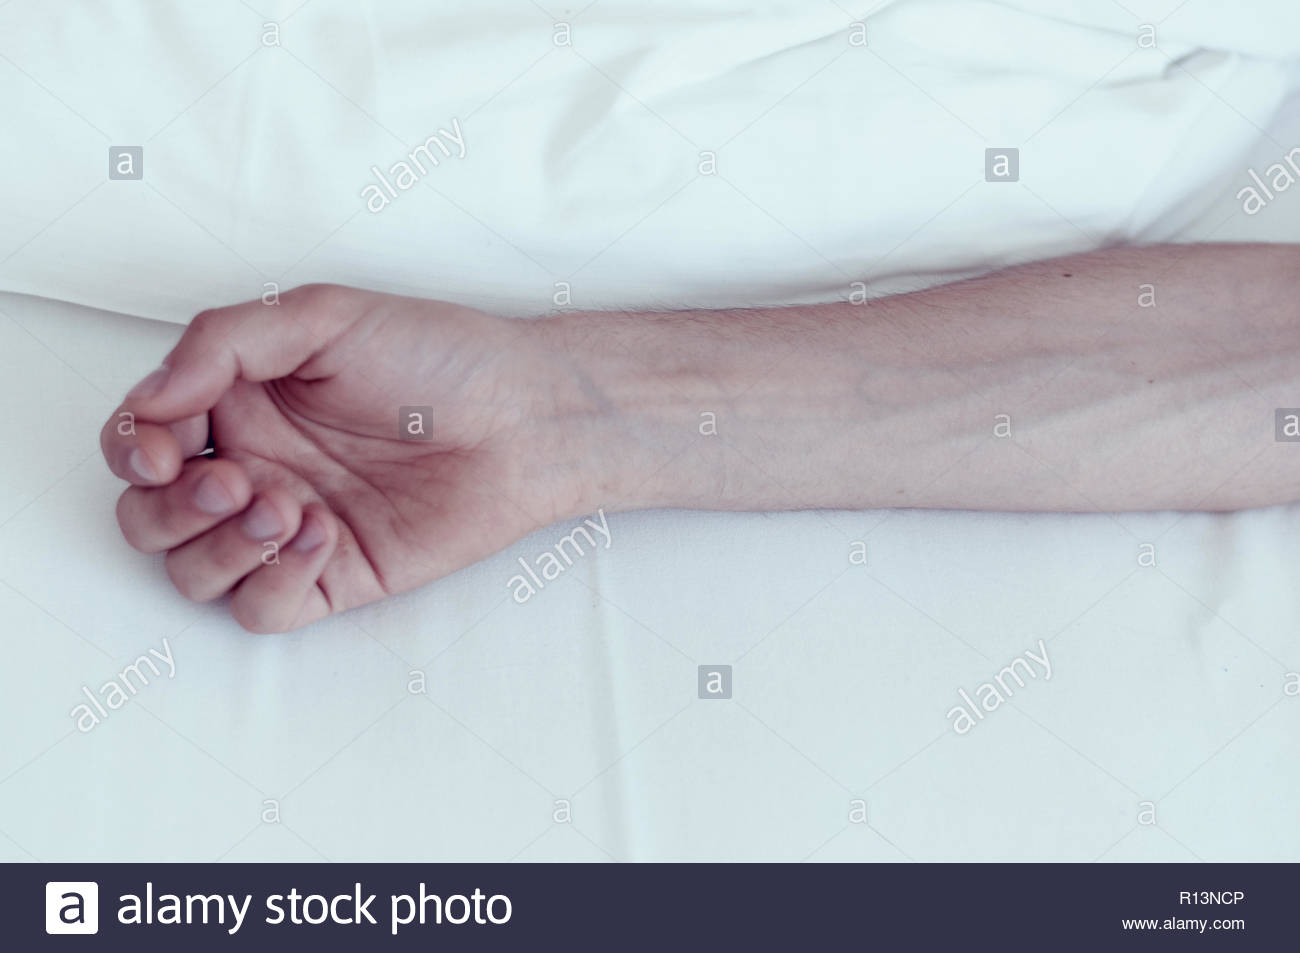 The softest touch - Stock Image